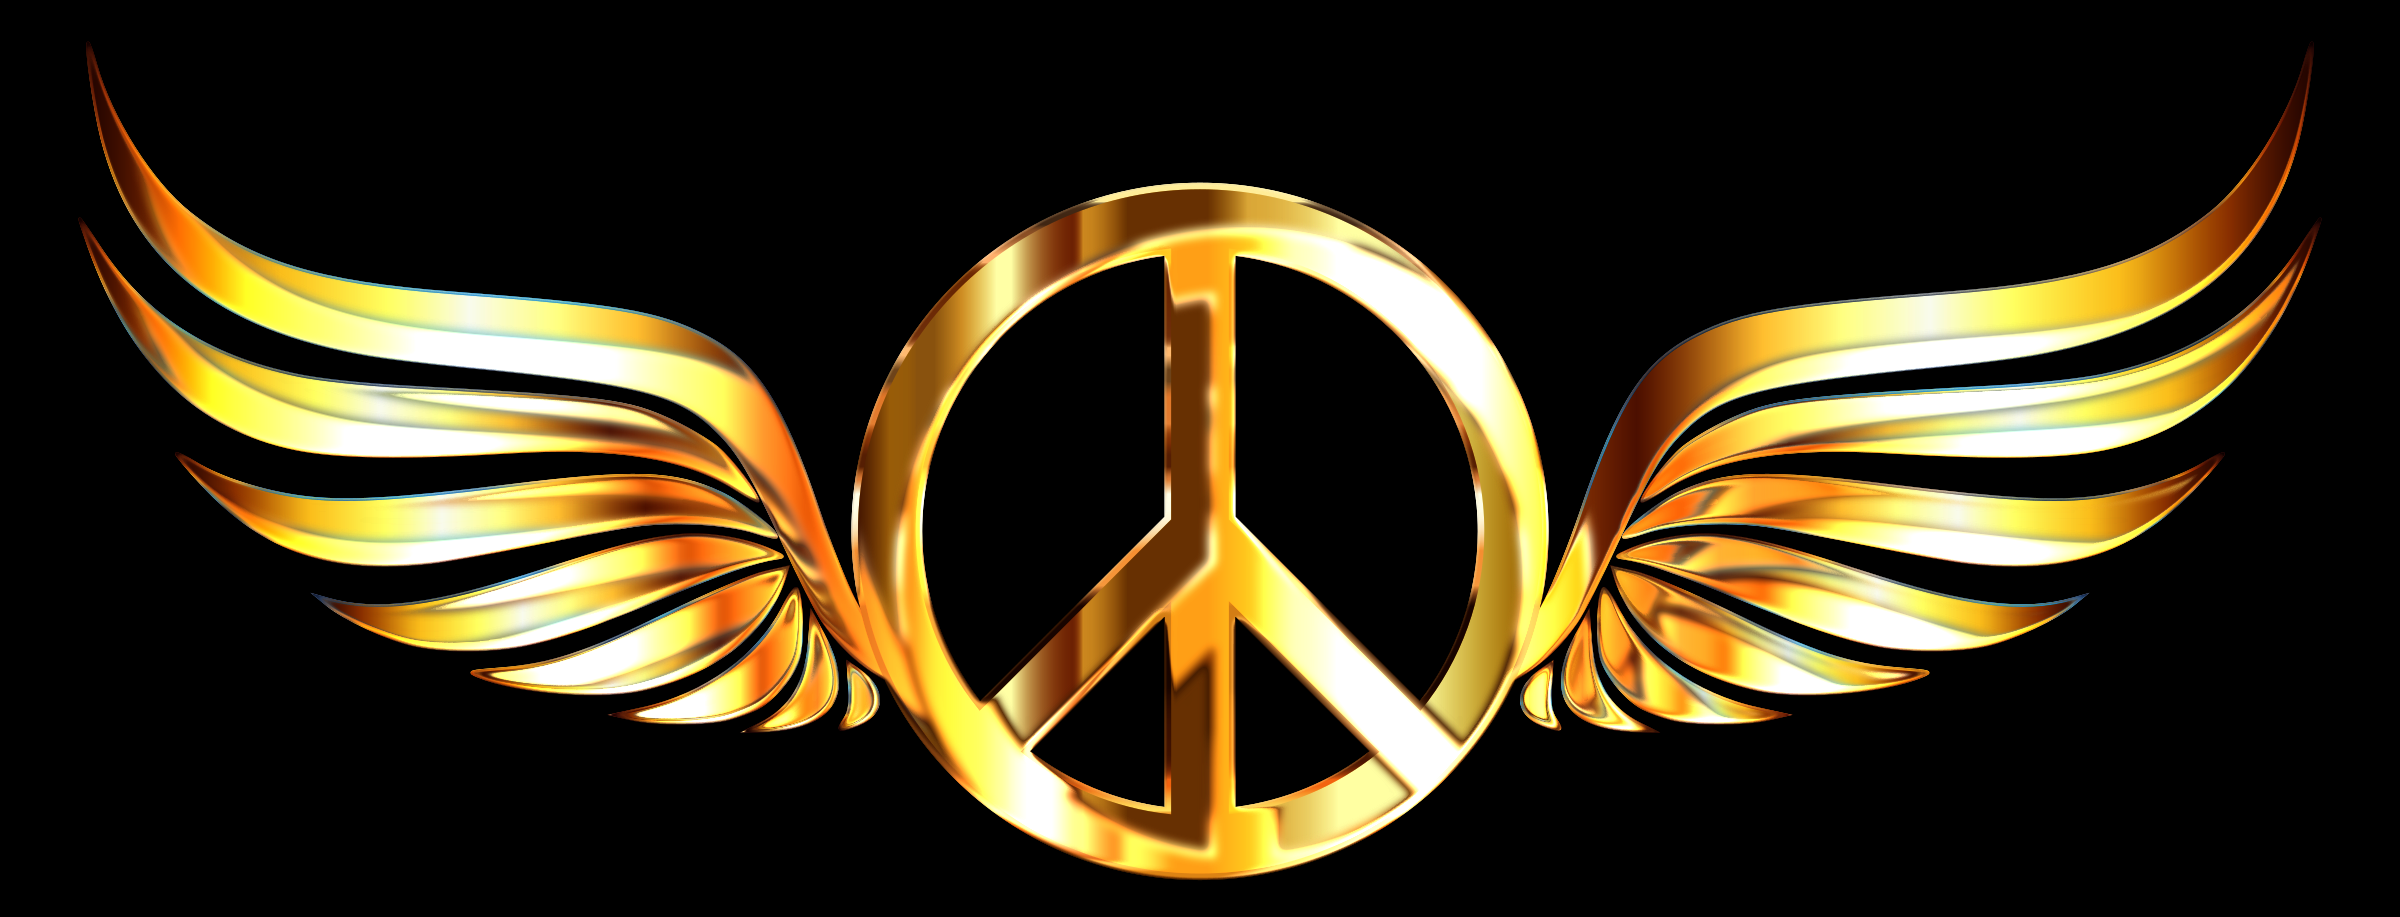 Gold Peace Sign Wings Enhanced by GDJ